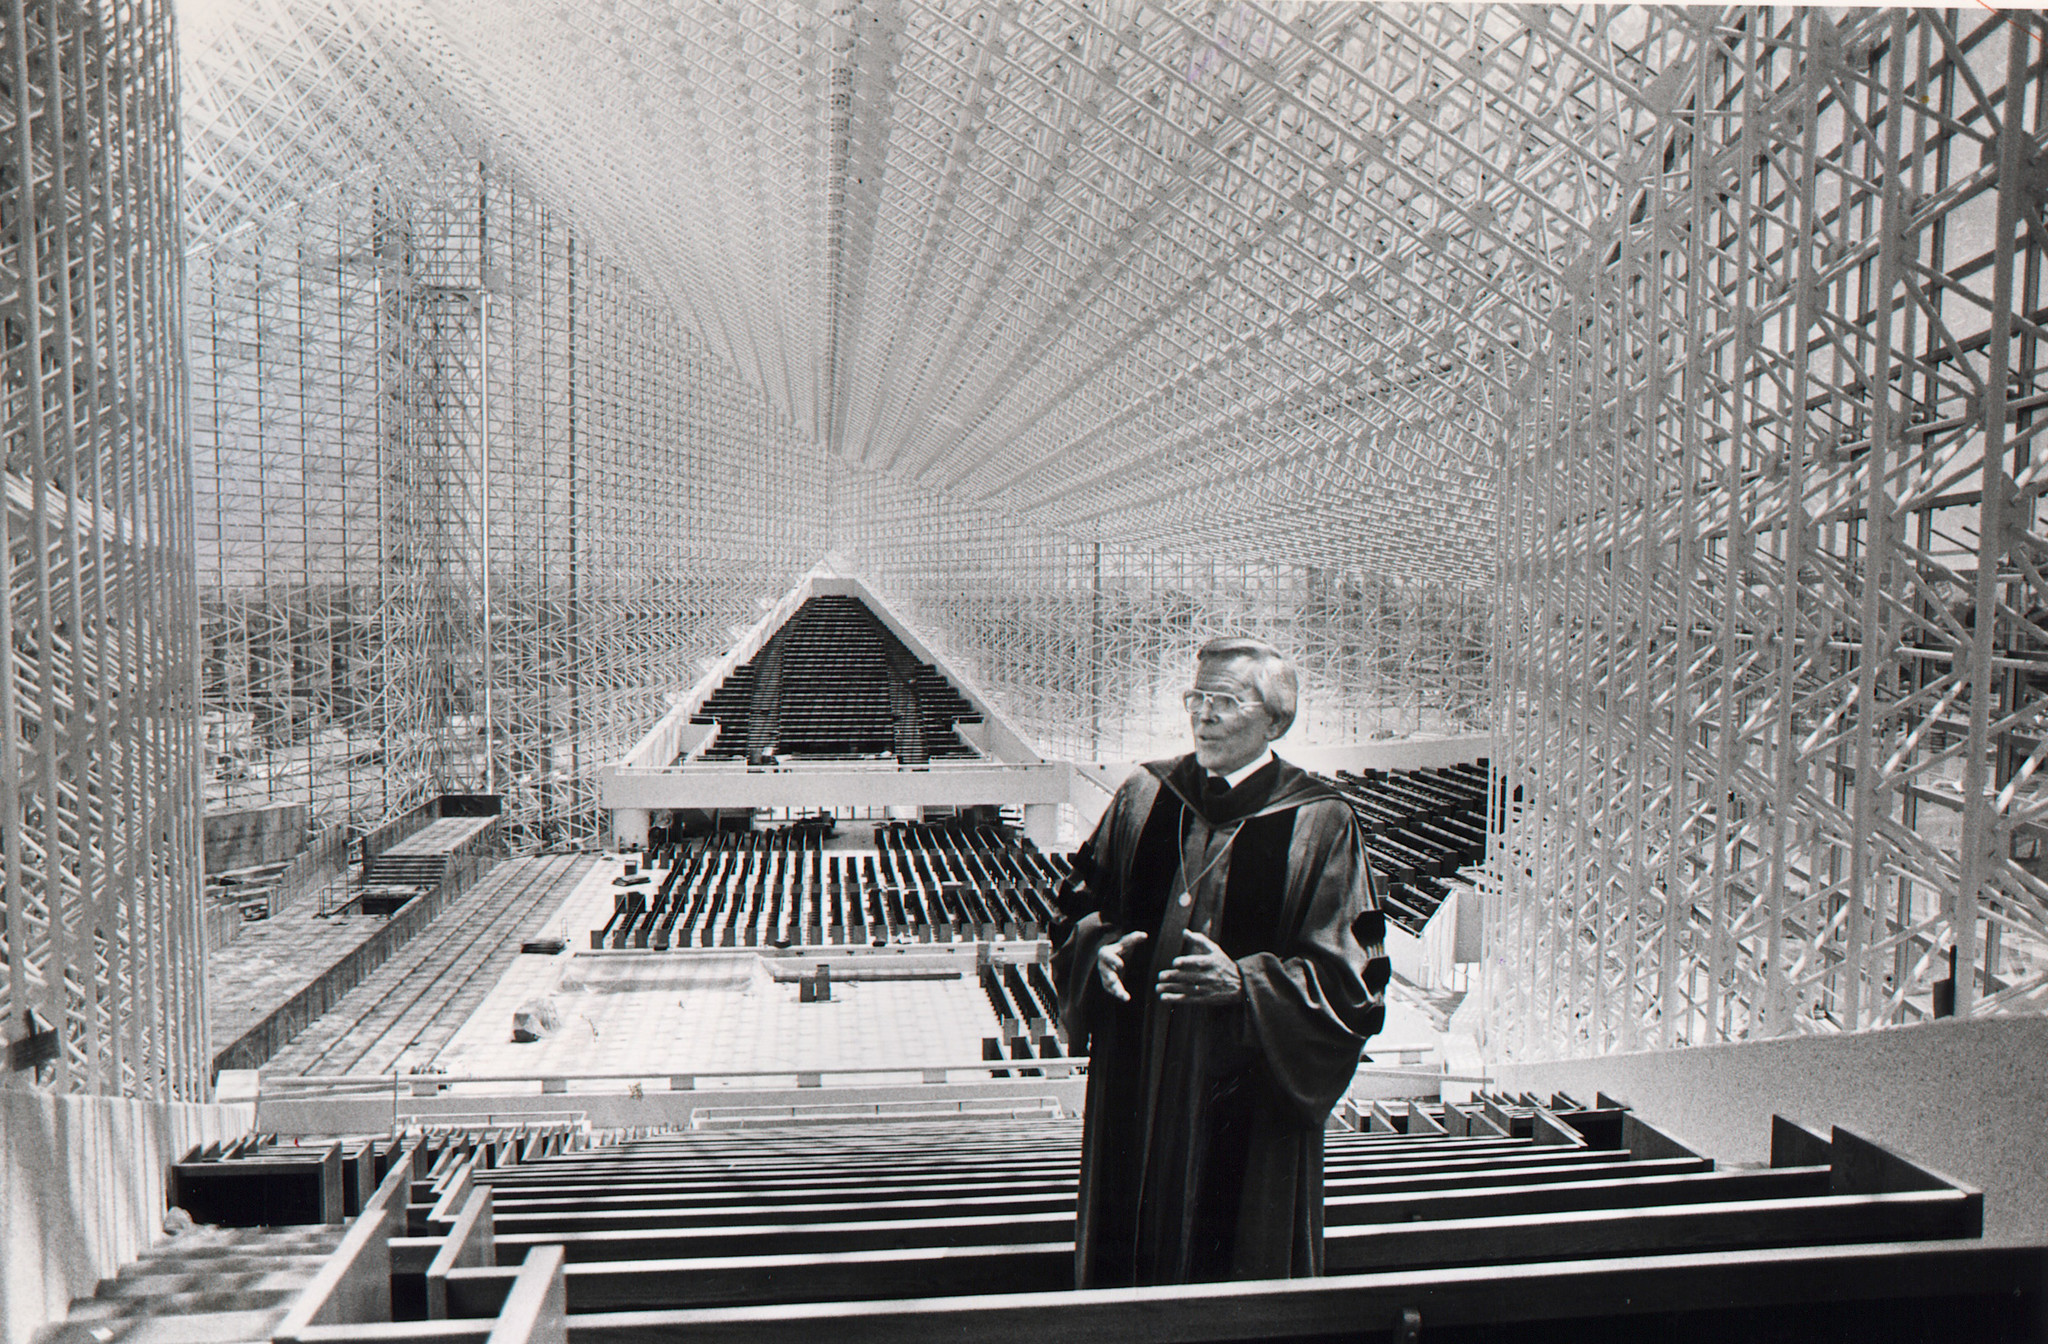 The Rev. Robert H. Schuller inside the Crystal Cathedral in 1980.